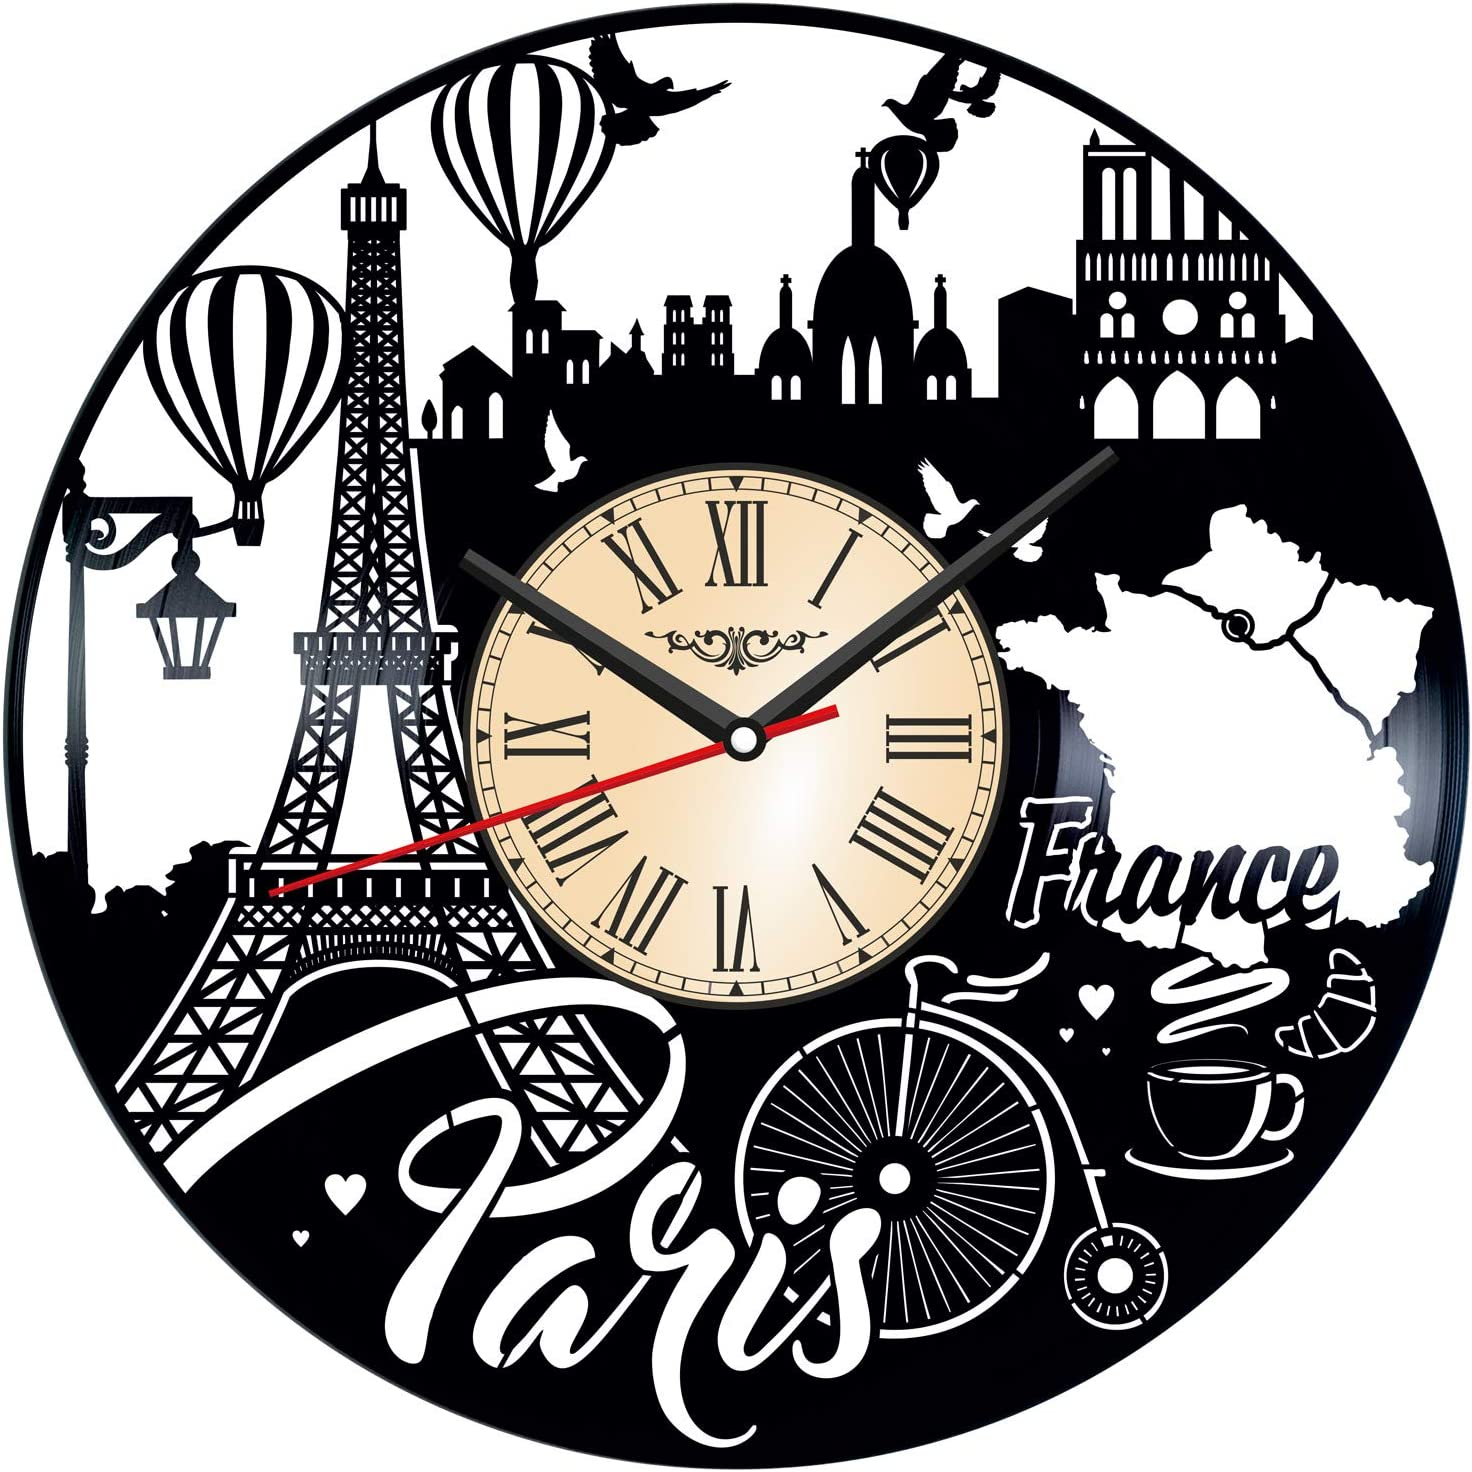 Paris France Vinyl Wall Clock - Home Decor Him Her Birthday Christmas Anniversary - Themed Clock for Your Home Or Office - Kids Living Room Kitchen Wall Art - 12 Inches